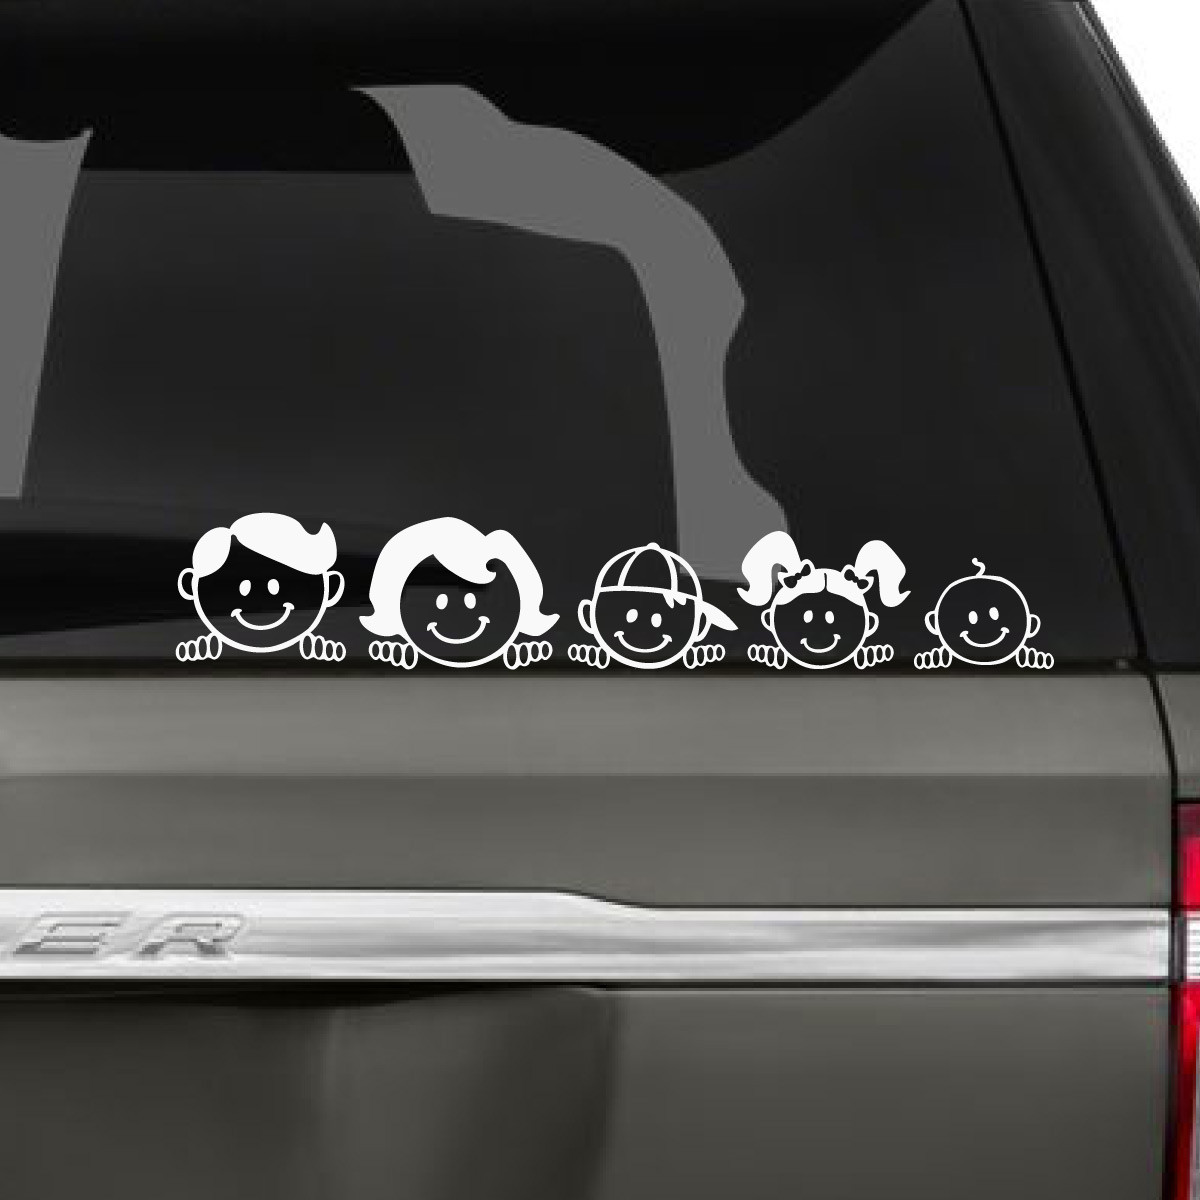 Peeping family car decal